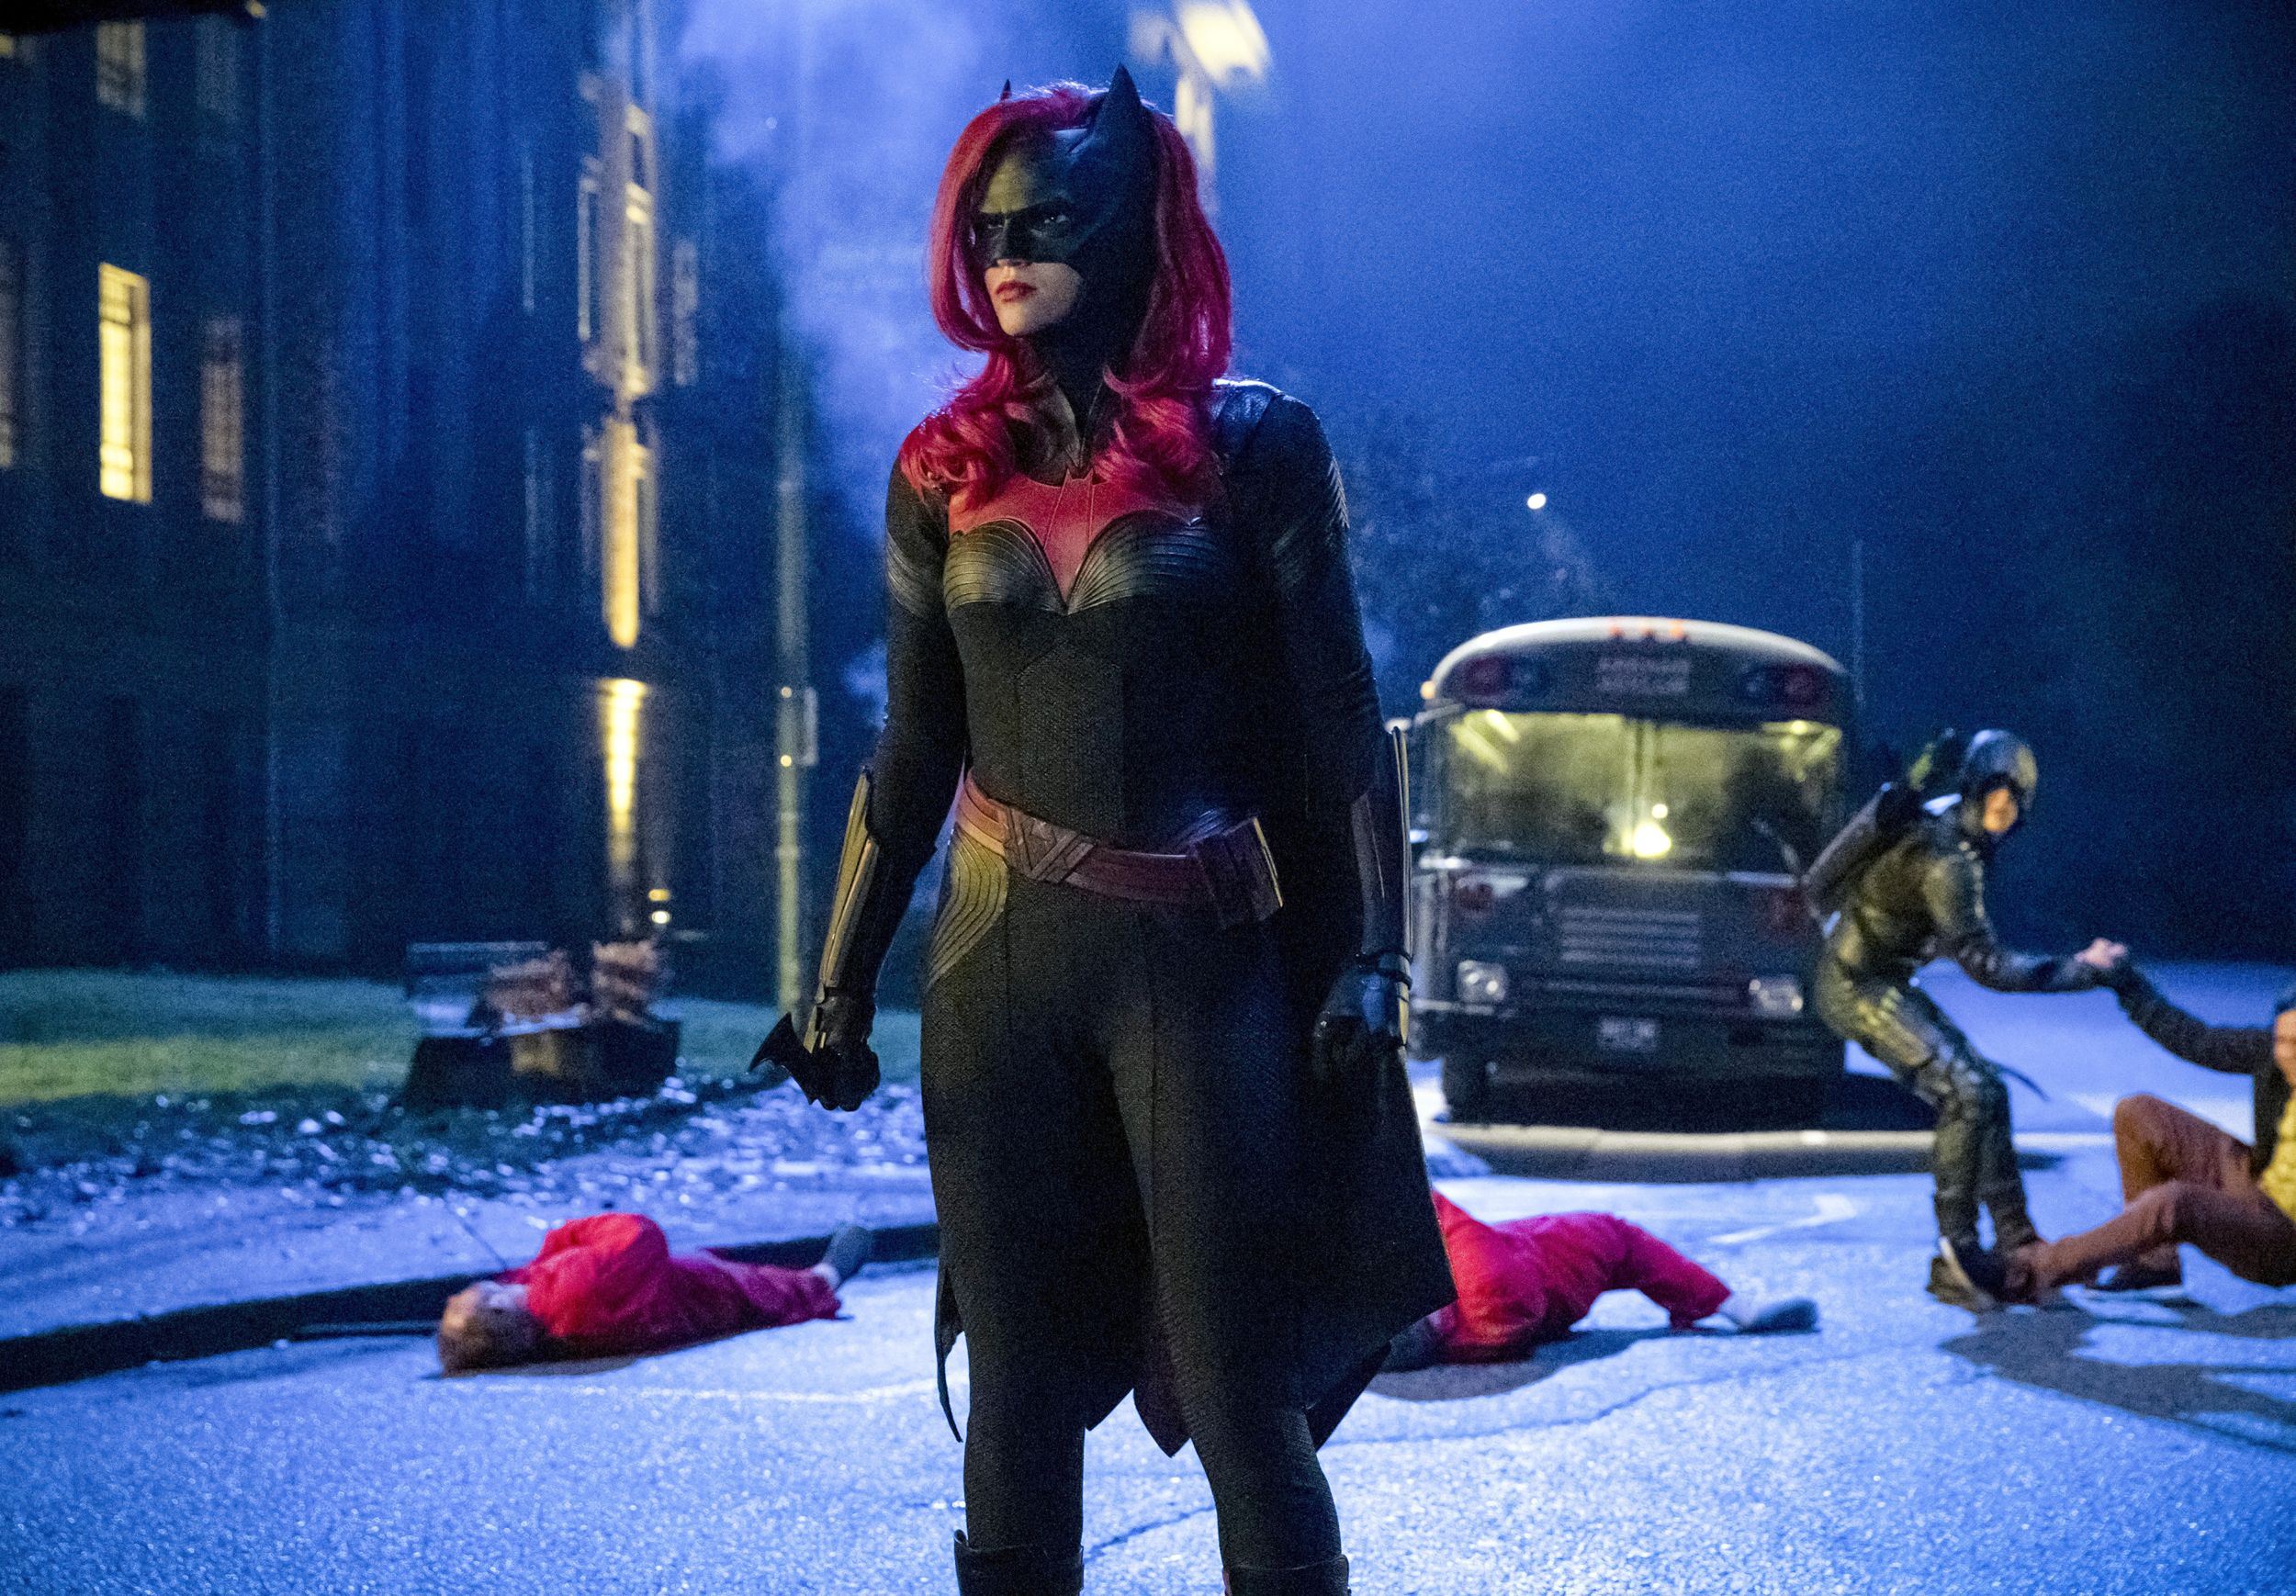 Batwoman gets her own suit